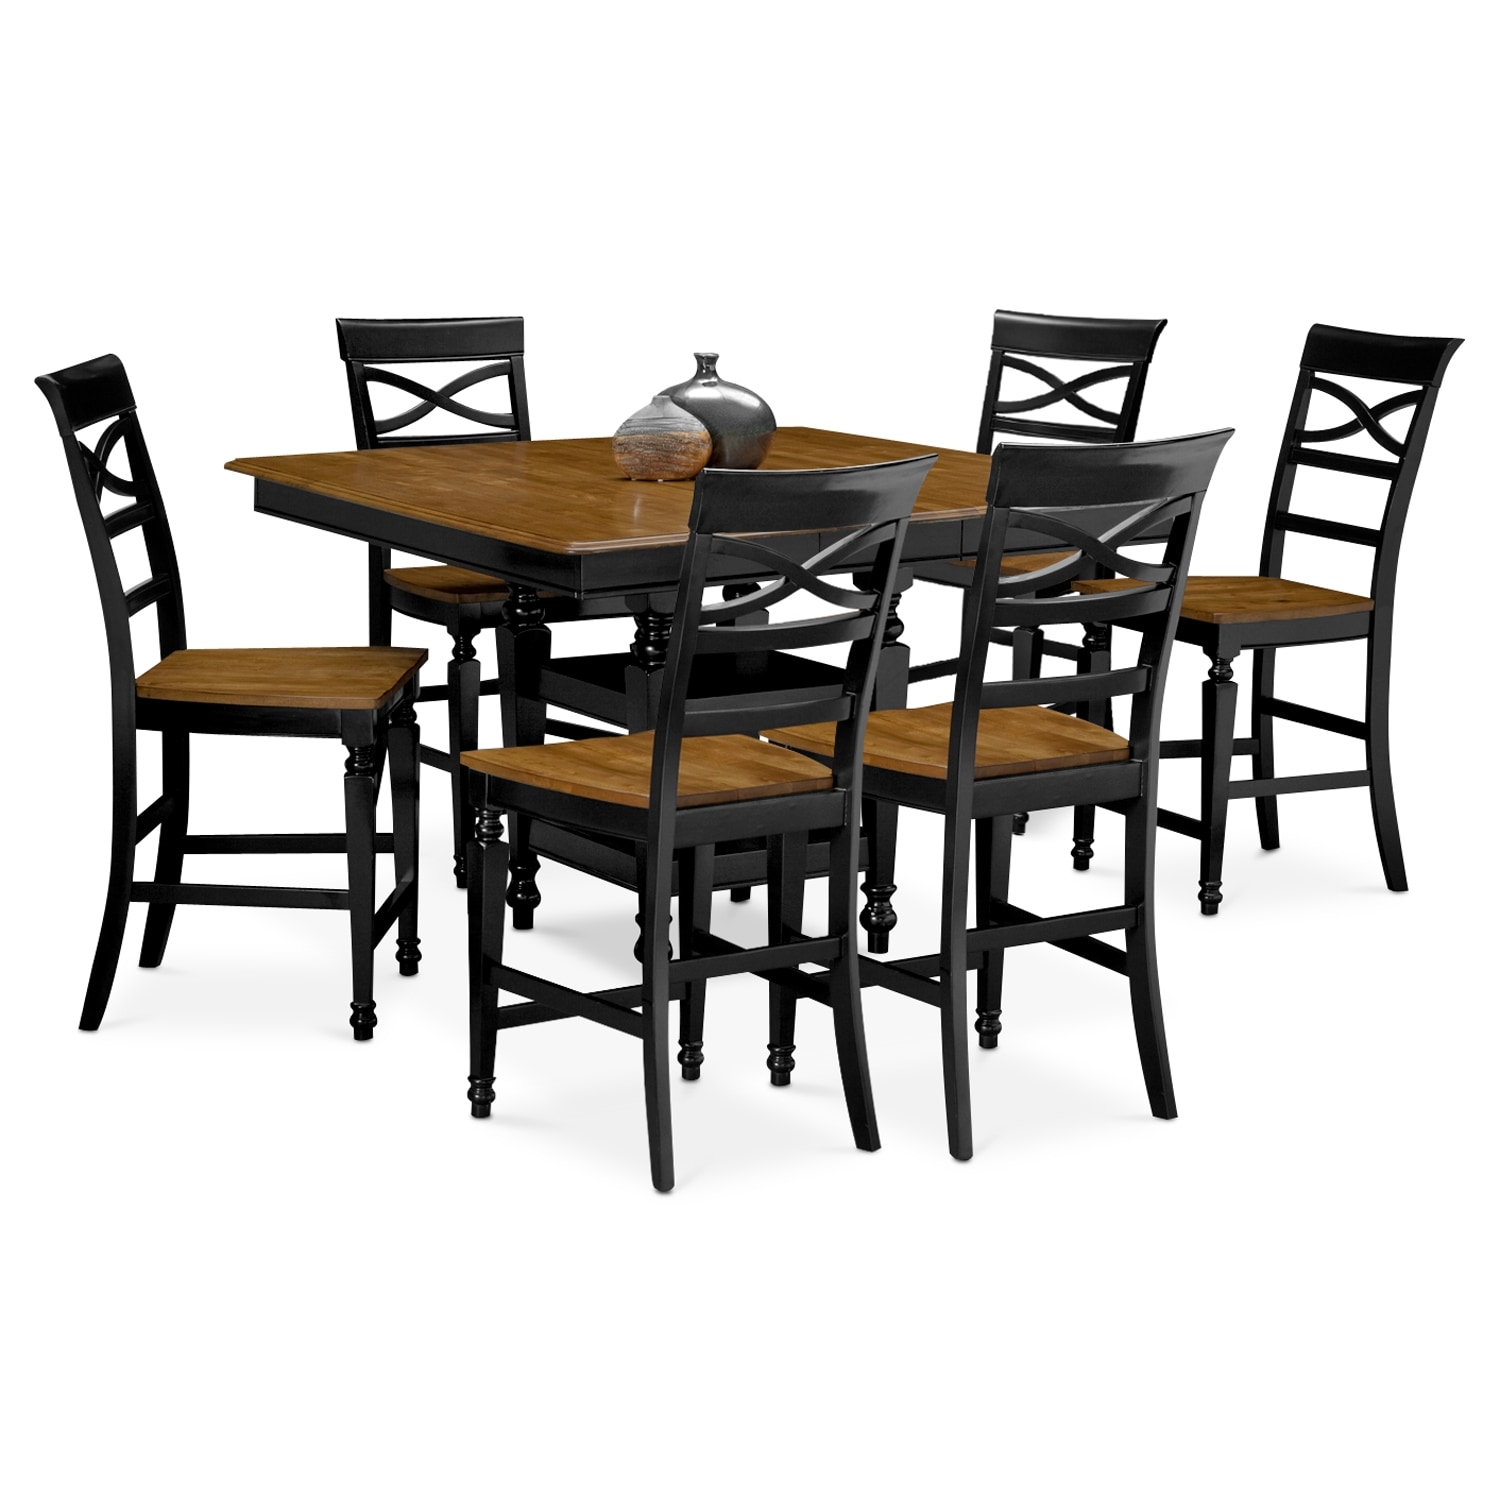 [Chesapeake 7 Pc. Counter-Height Dining Room]